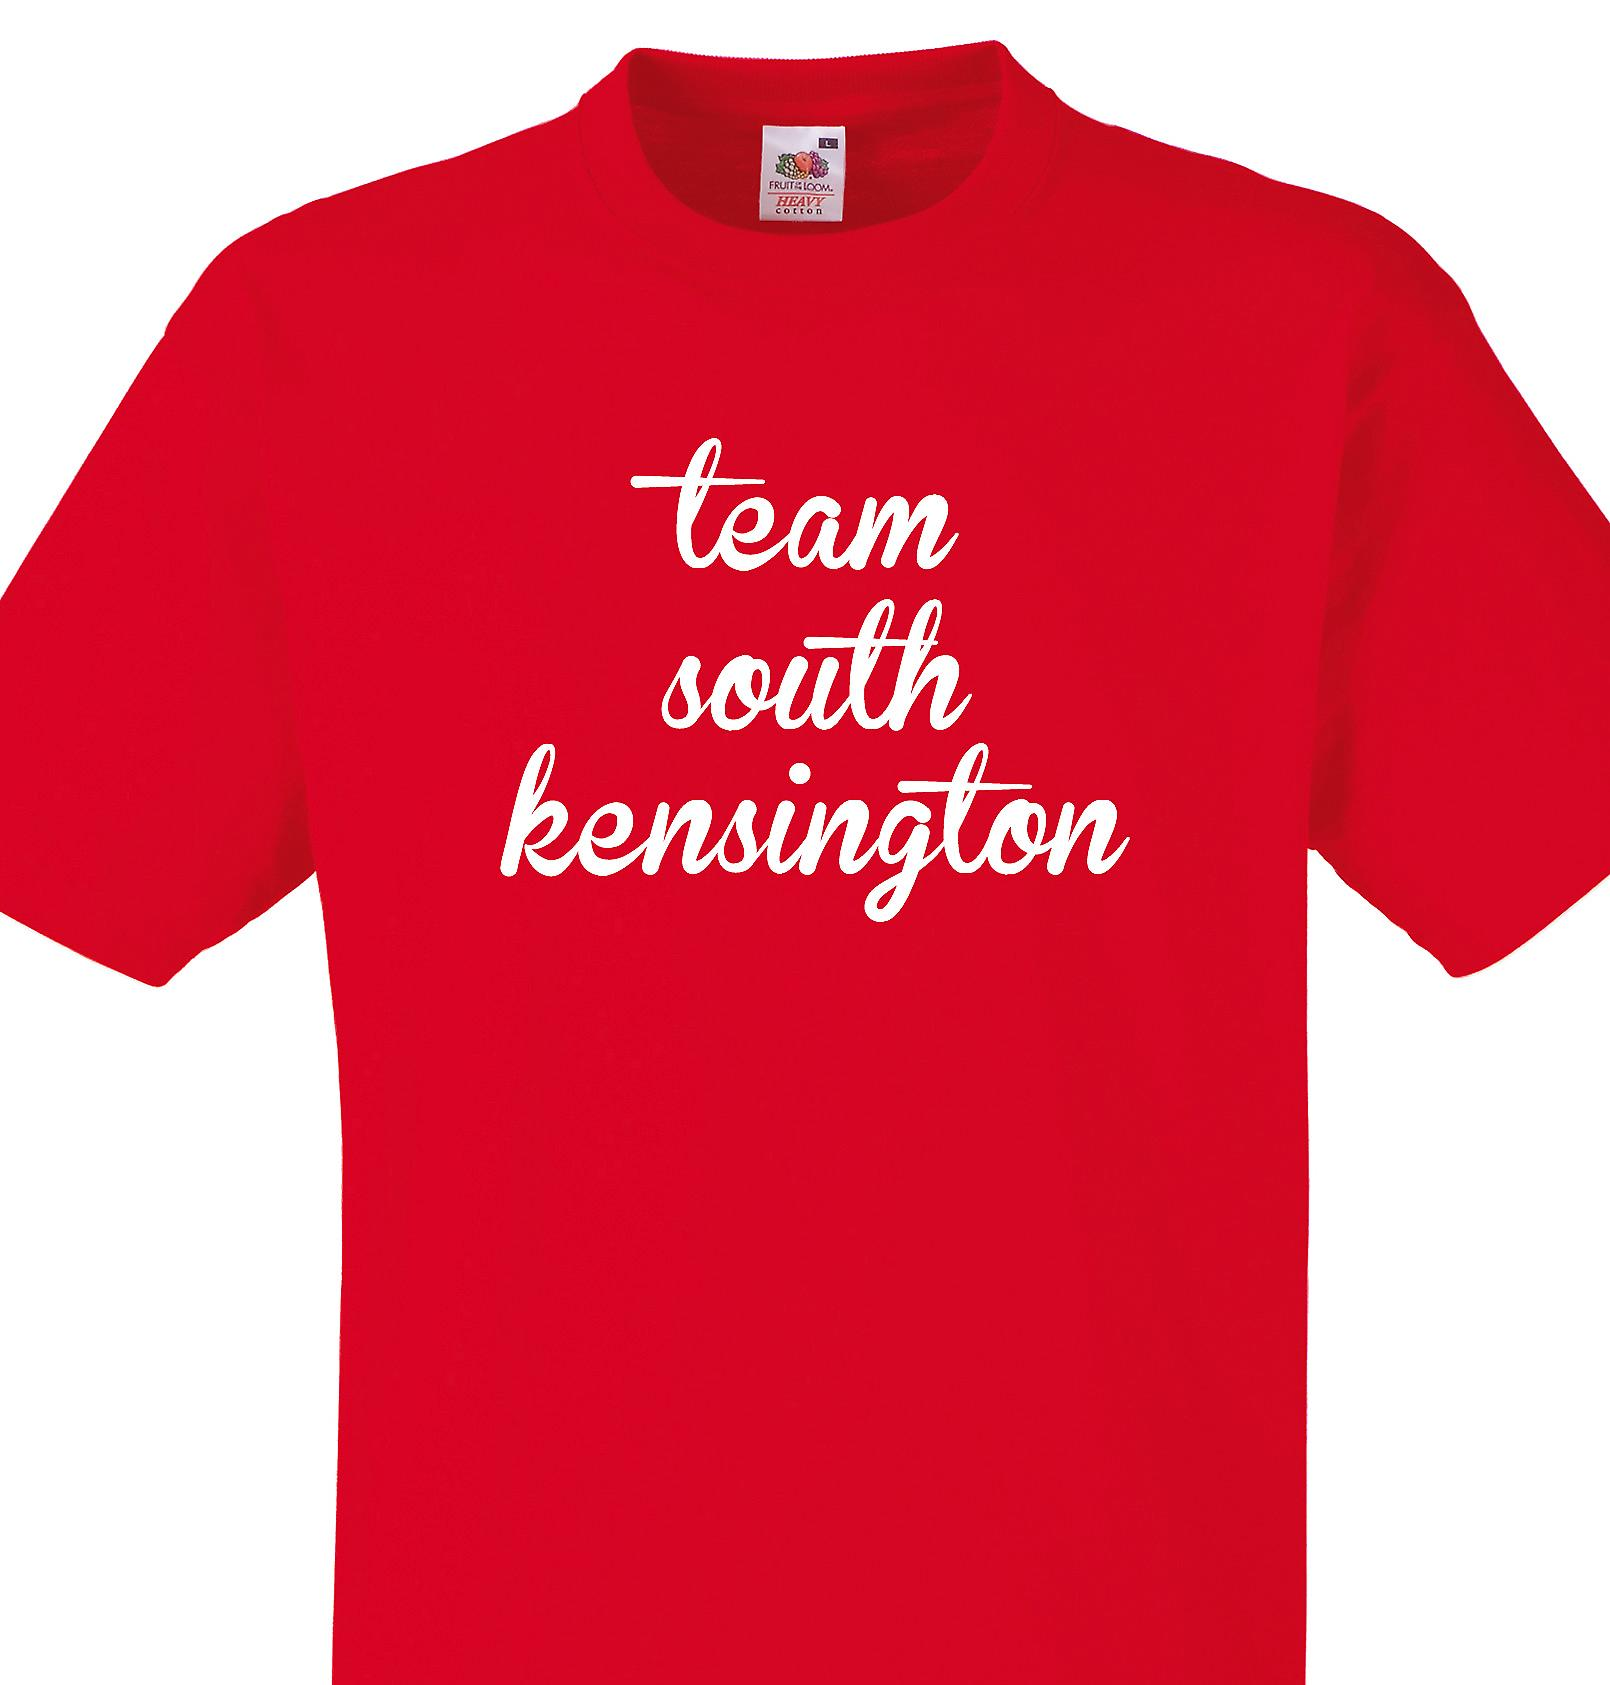 Team South kensington Red T shirt